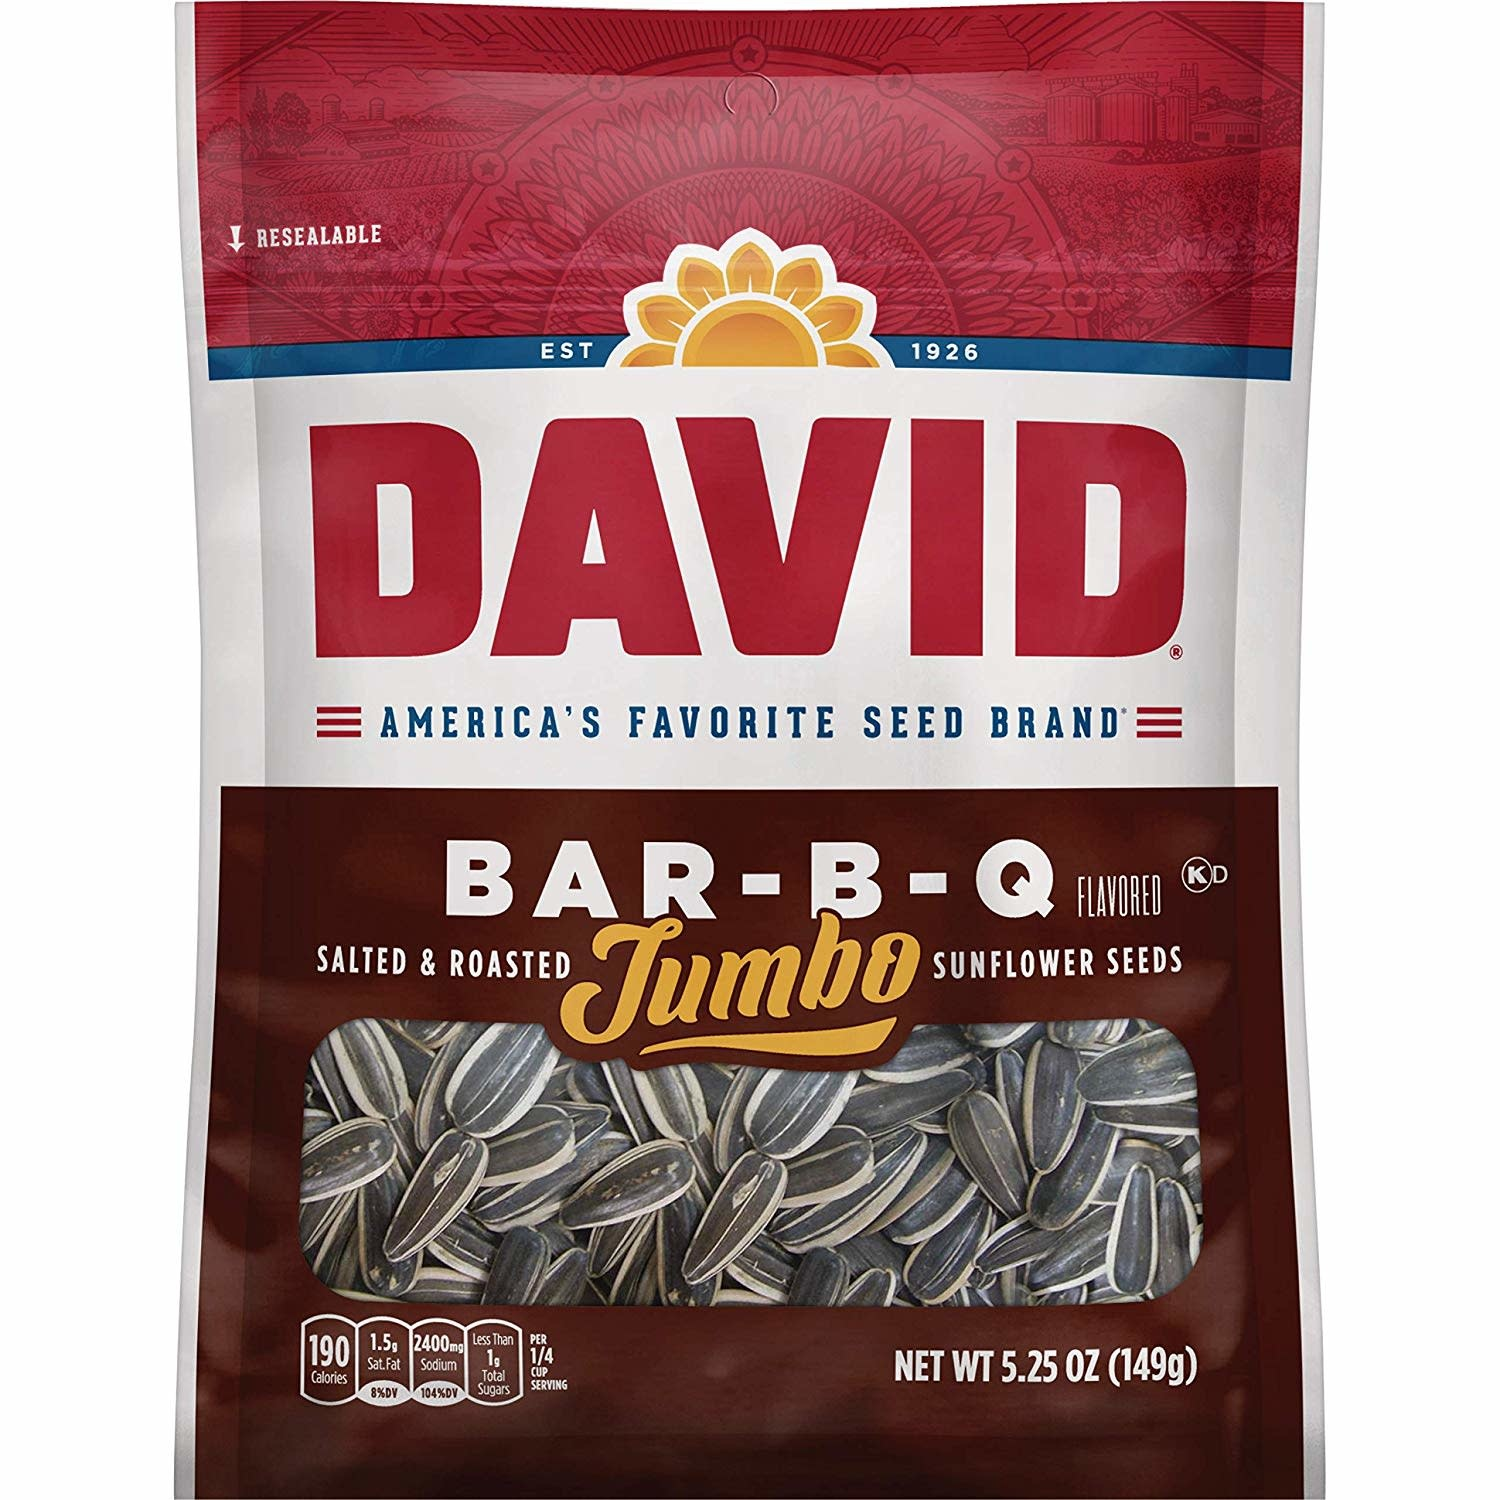 CONAGRA GILARDI Sunflower Seeds, David's BBQ 5.25oz